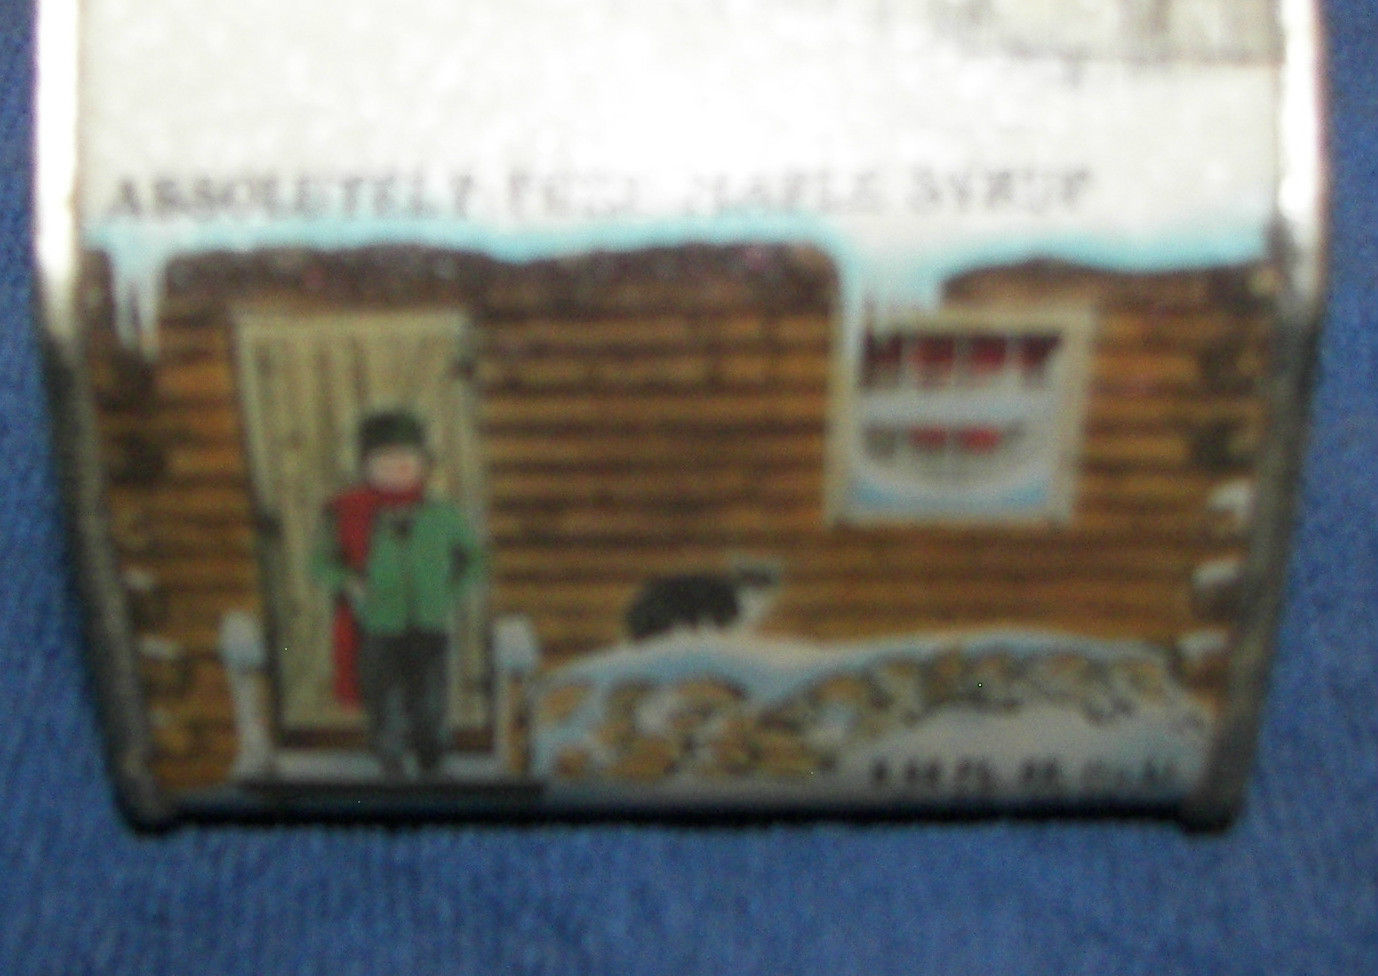 Wonderful image of  Vermont Maple Syrup Log Cabin Container 8.45 fl oz Pancakes & Syrup with #30496E color and 1378x976 pixels